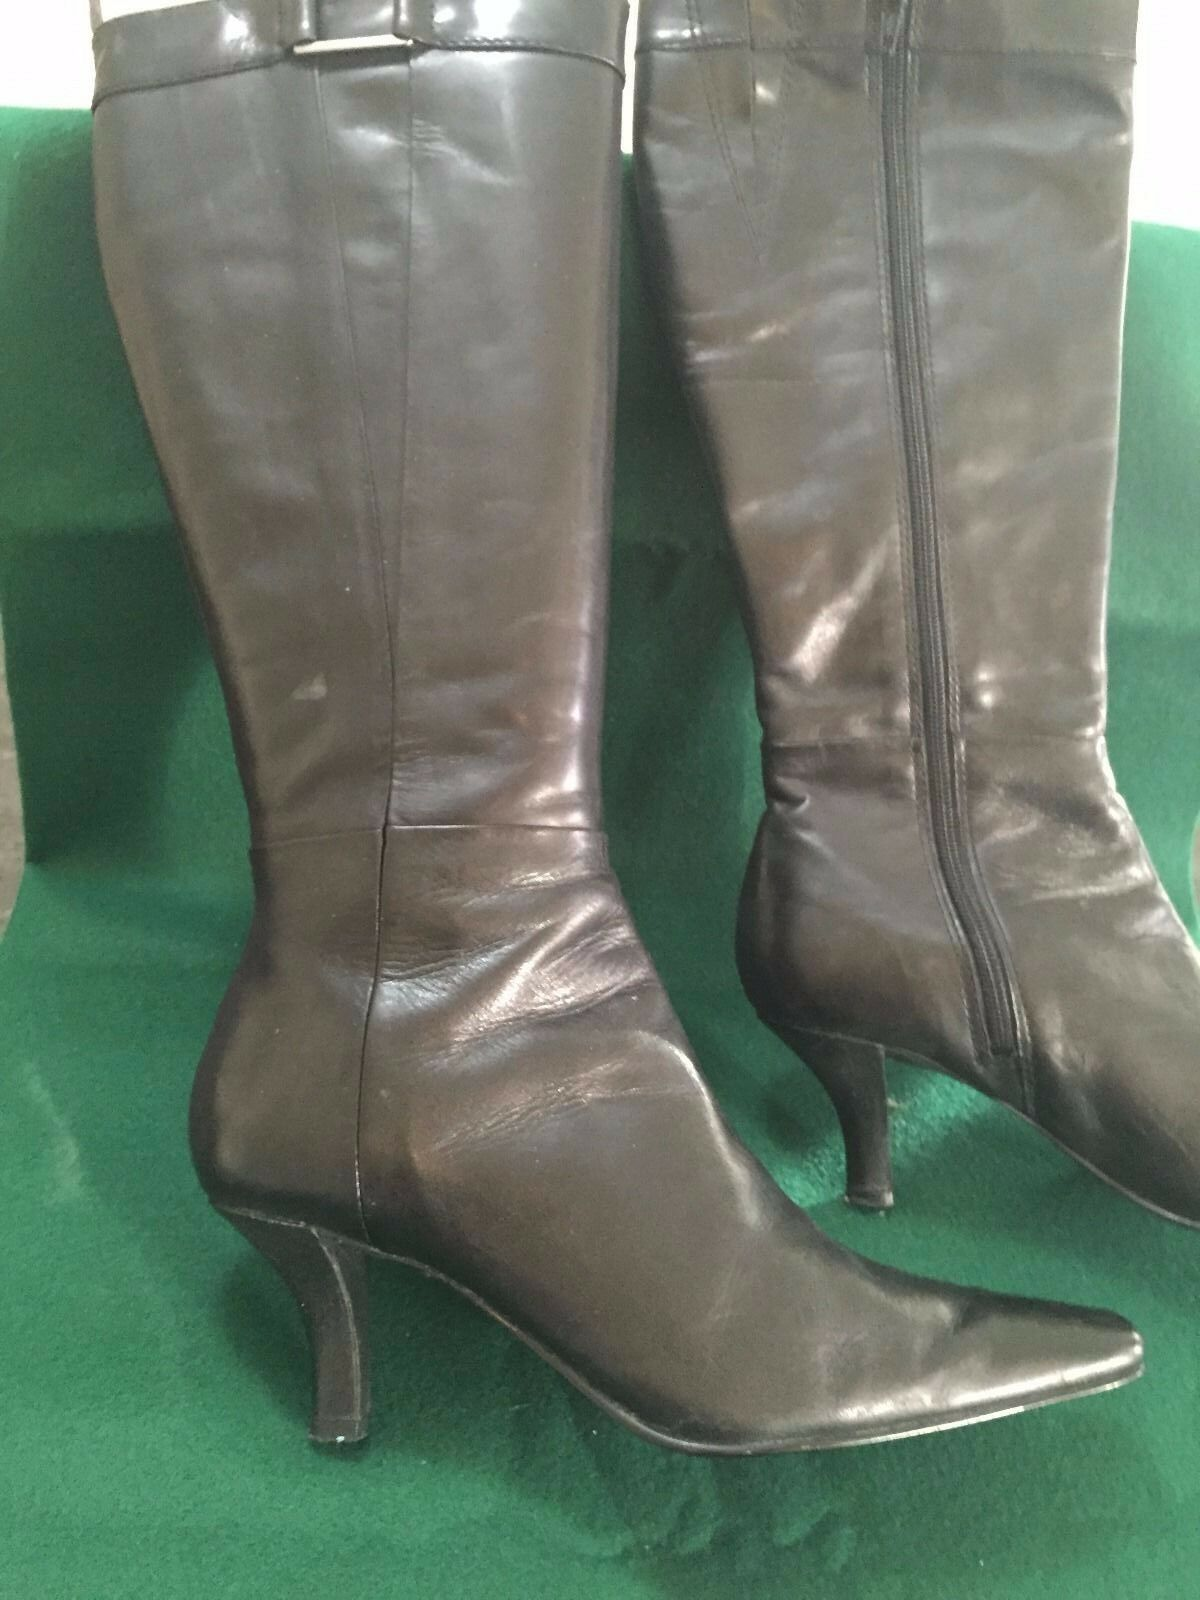 BANDOLINO BLACK WOMEN Tall BOOTS SIZE 38 7 HEEL 2 3/4 IN